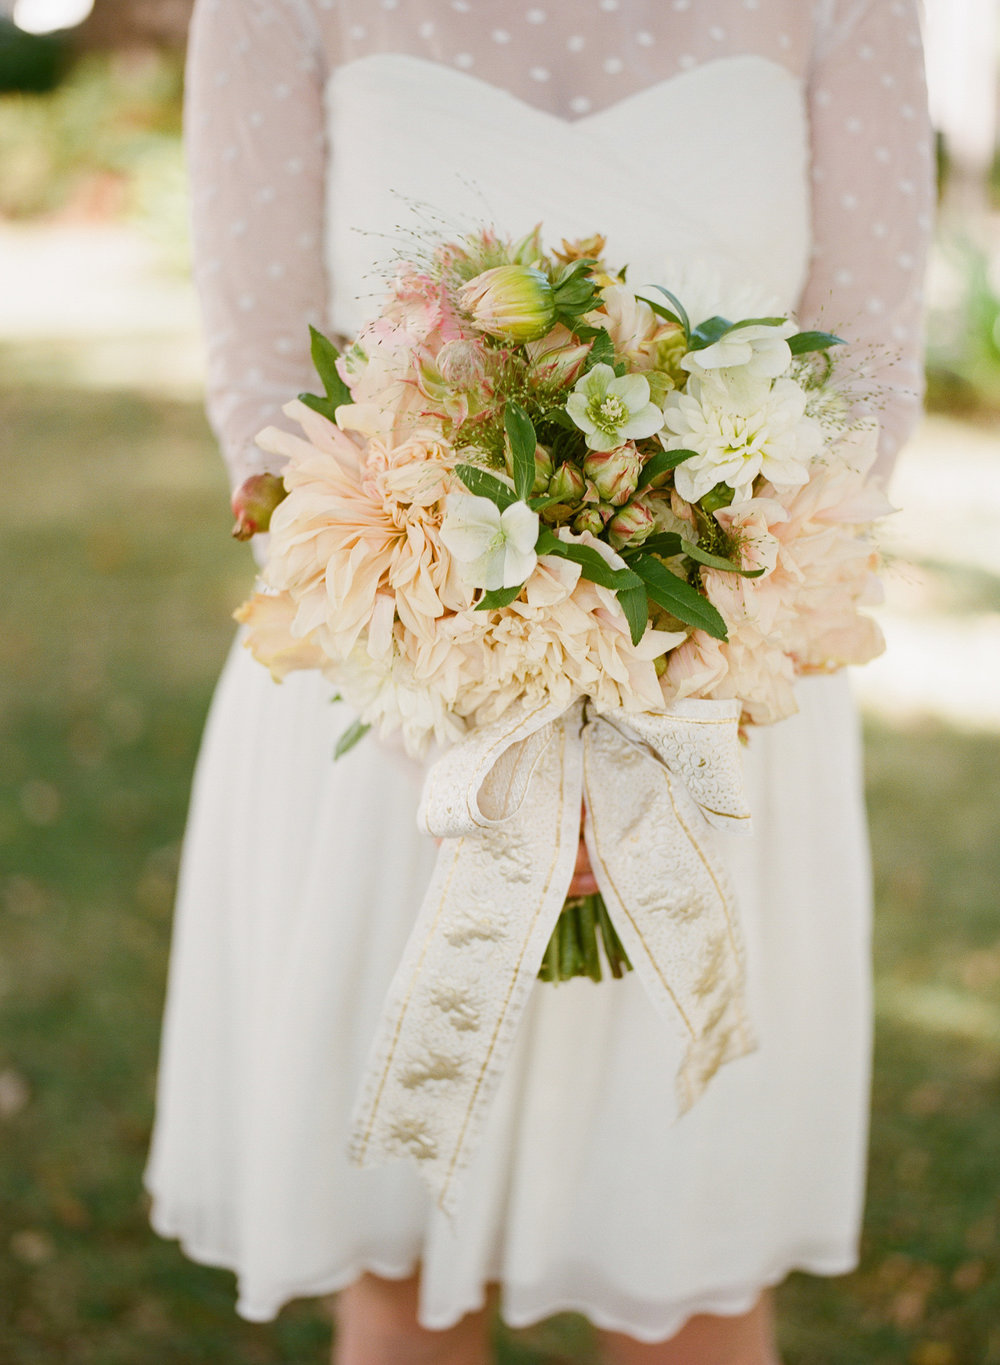 21-12-bride-bouquet-peach.jpg